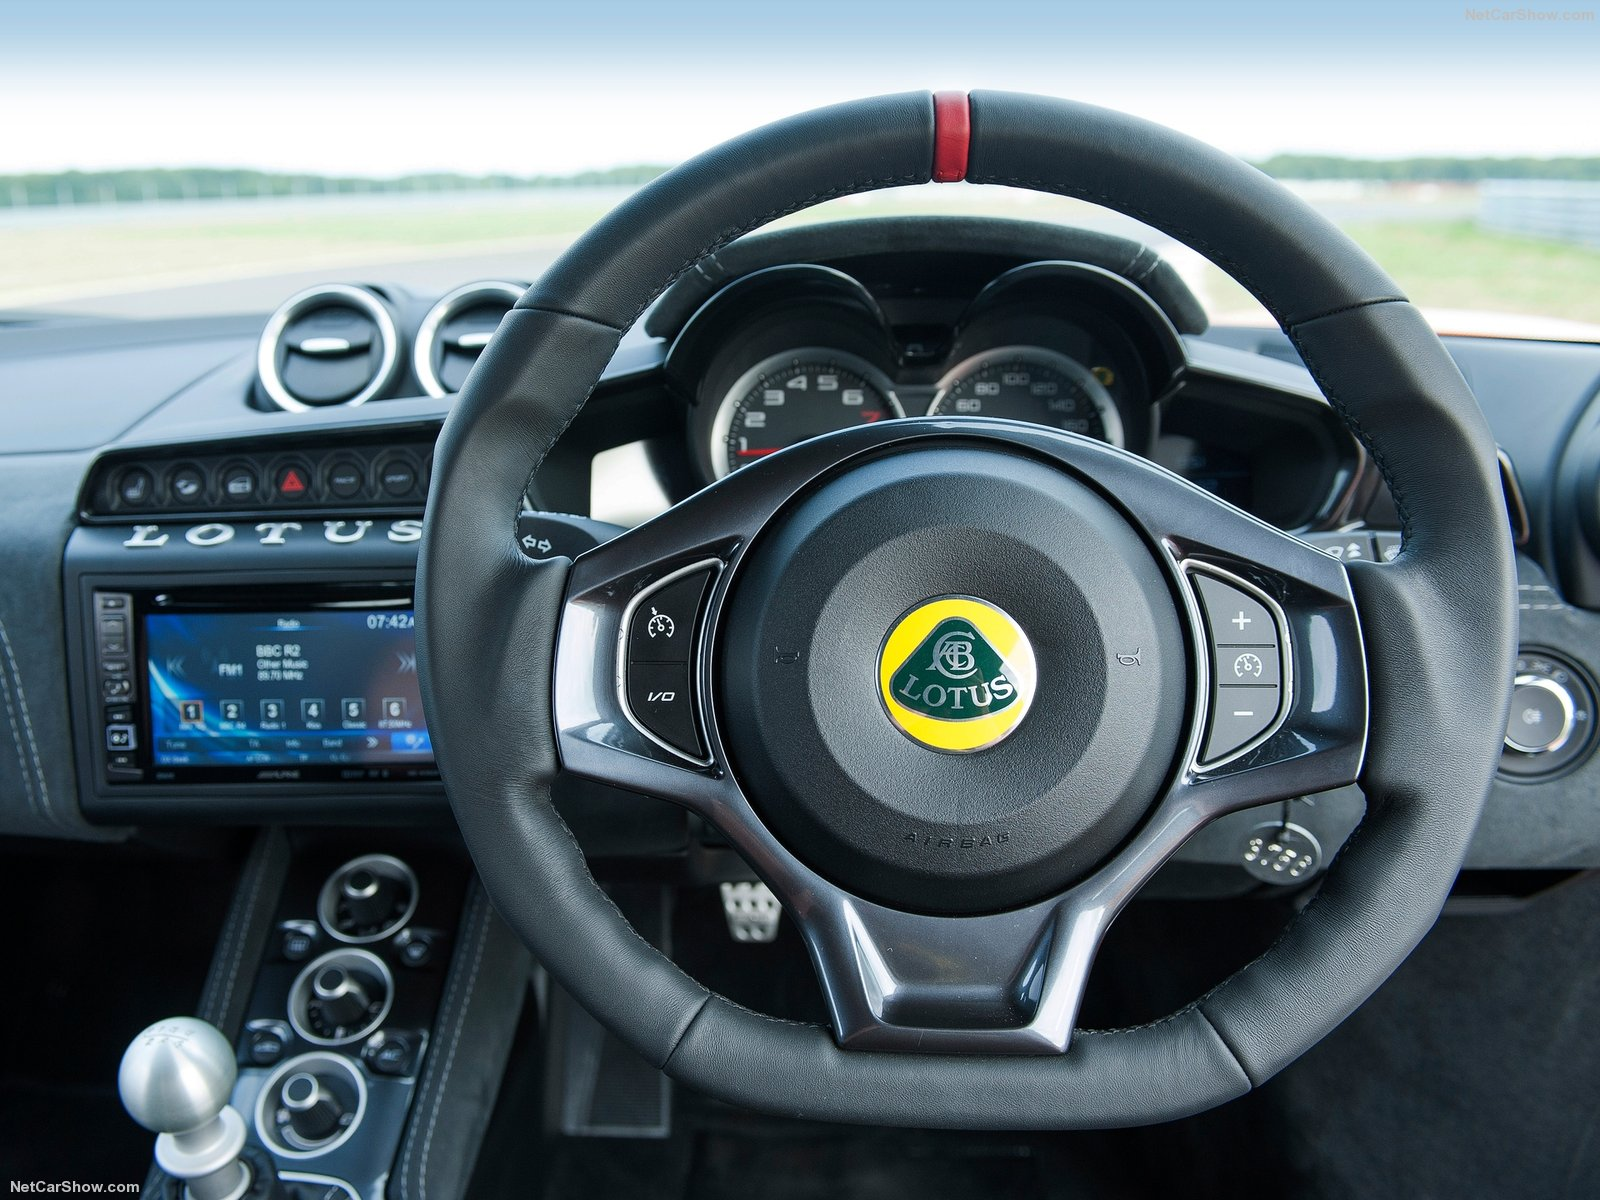 Lotus Evora photo 158675